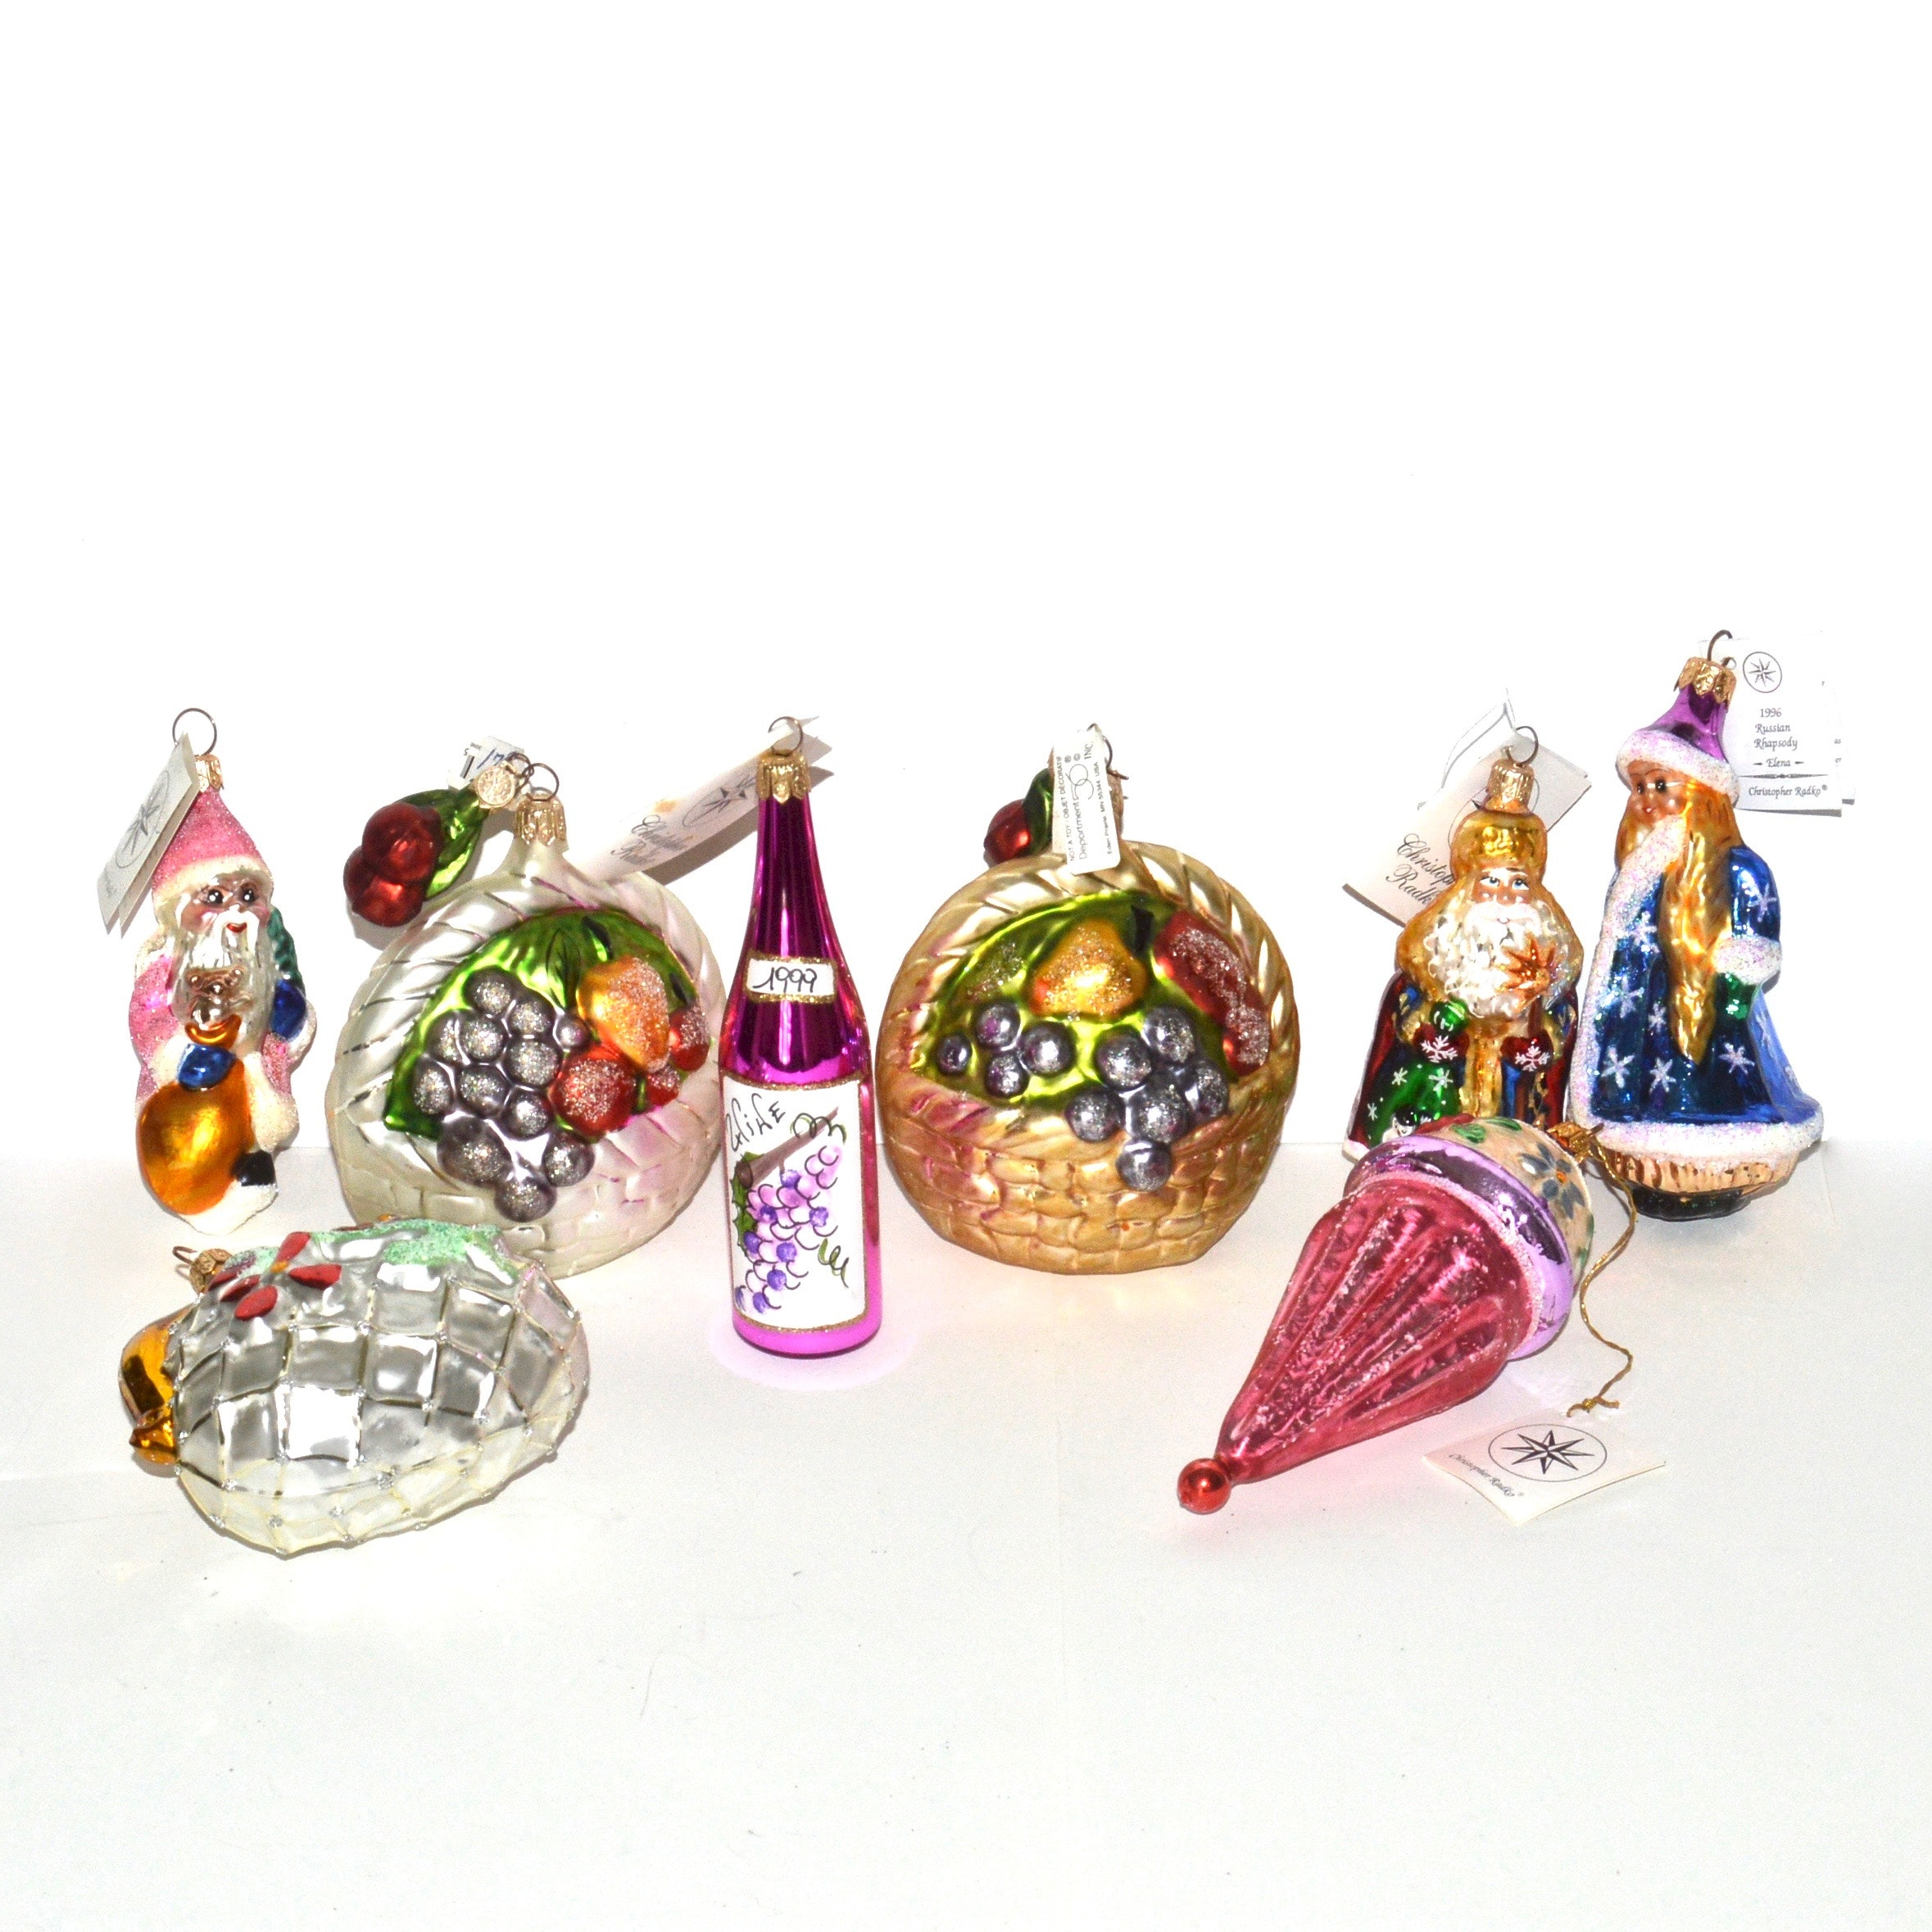 Christopher Radko Hand-Painted Ornaments and Department 56 Ornaments